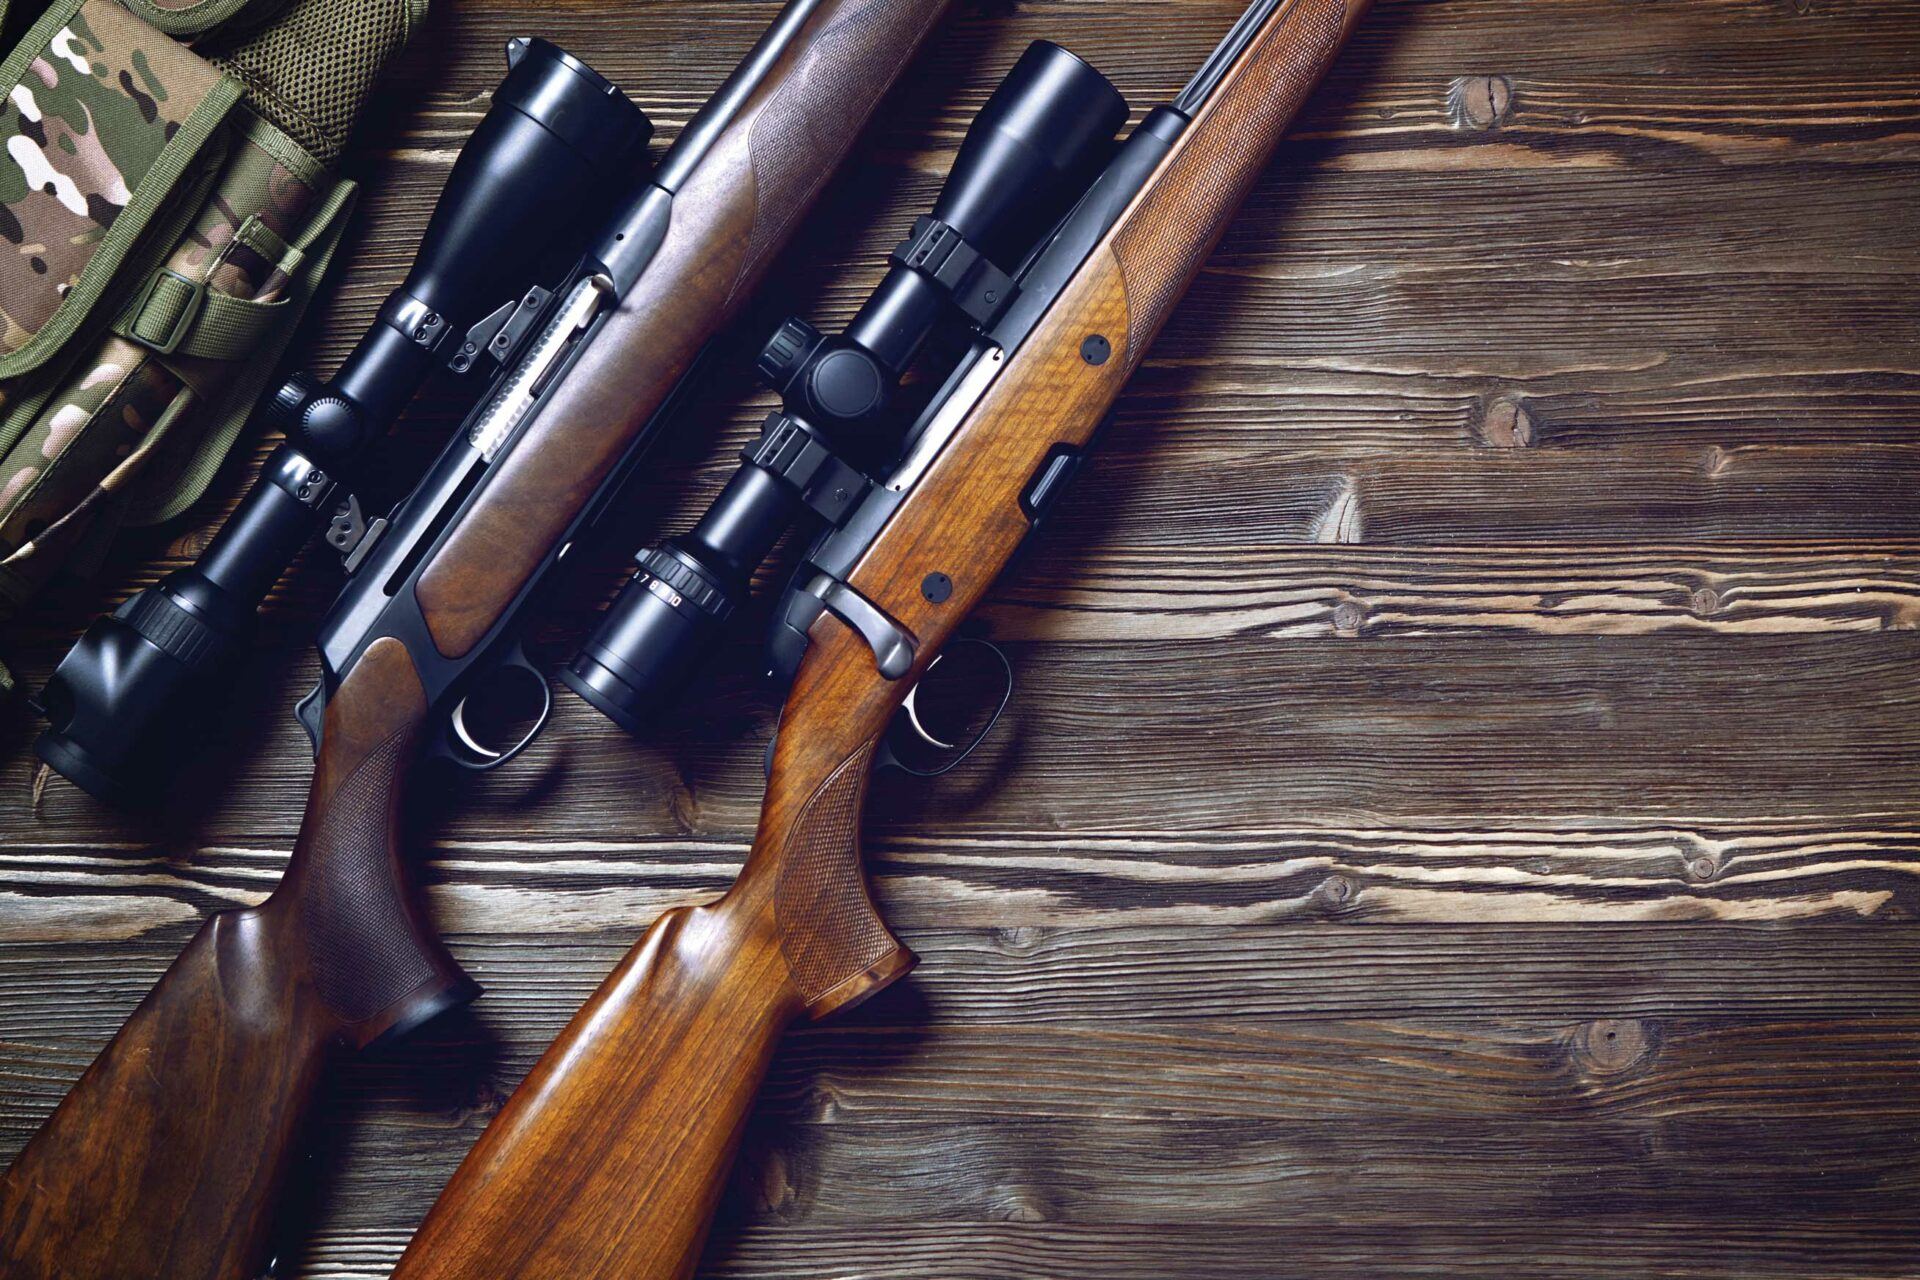 TV shows focused on hunting have a responsibility to showcase how to safely and properly use and handle firearms.